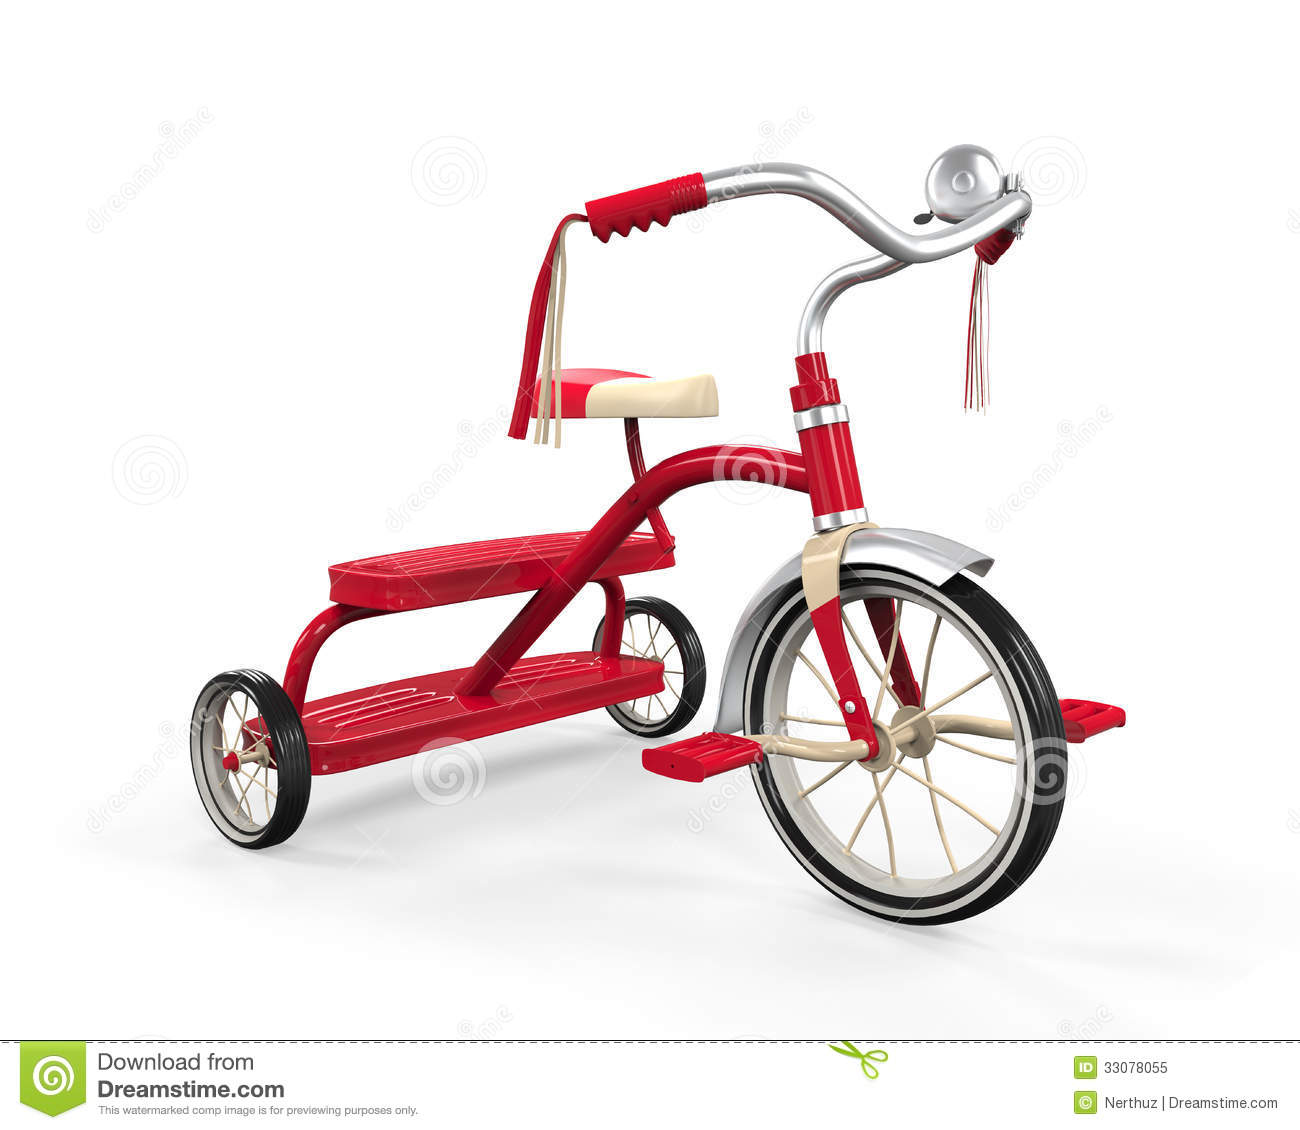 Kids Tricycle Isolated Stock Illustration Illustration Of Ride 33078055